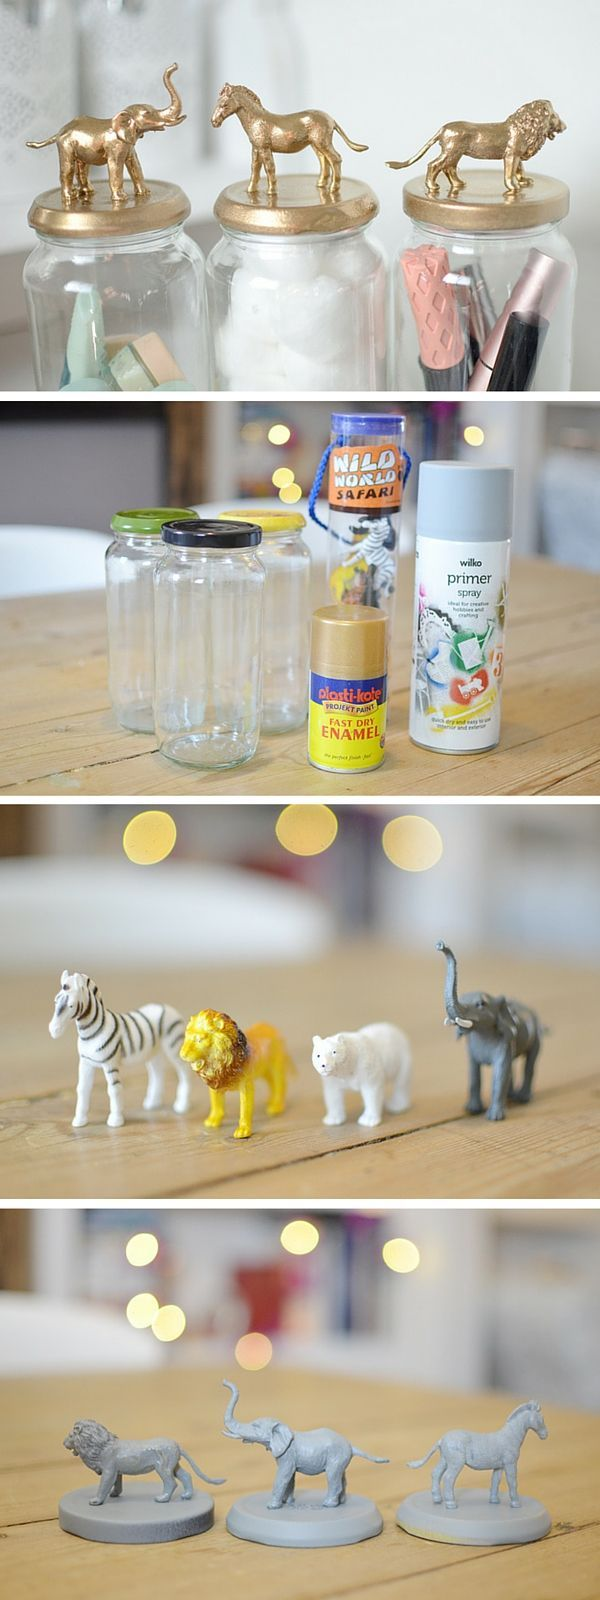 10 brilliant diy home decor ideas to makeover your home jar tutorials and diys - Home Decor Diy